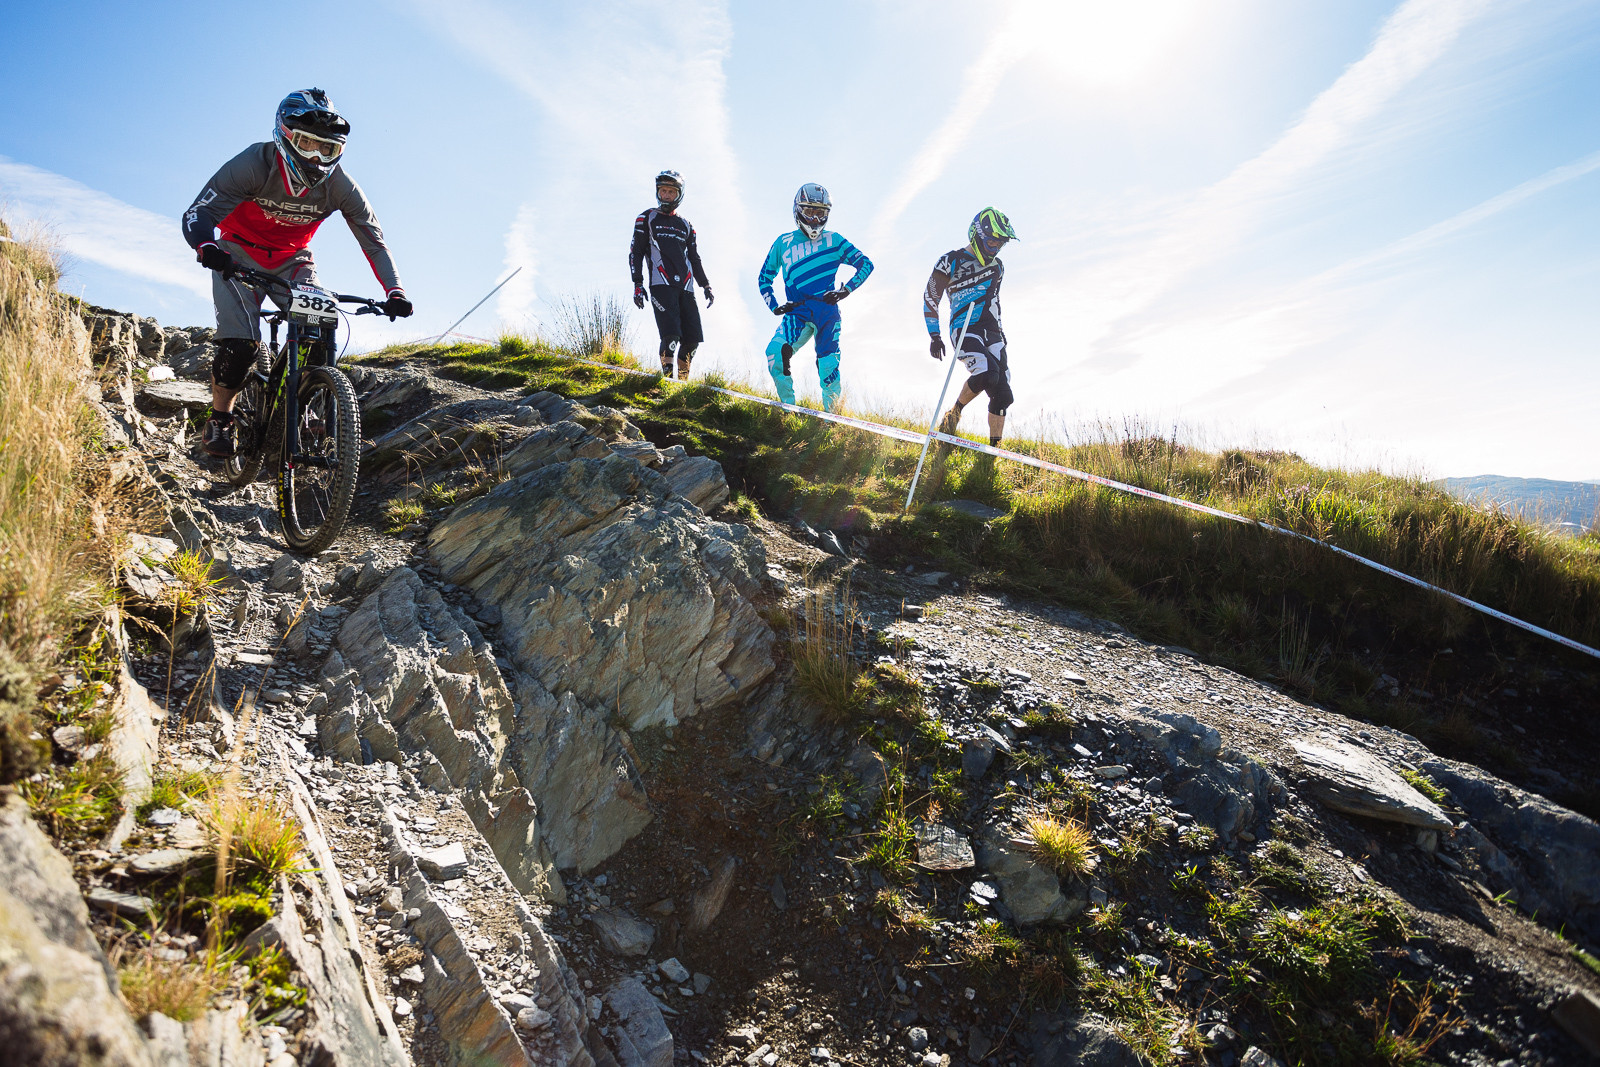 2015 British Downhill Series Finals, Antur Stiniog - 2015 British Downhill Series Finals - Mountain Biking Pictures - Vital MTB